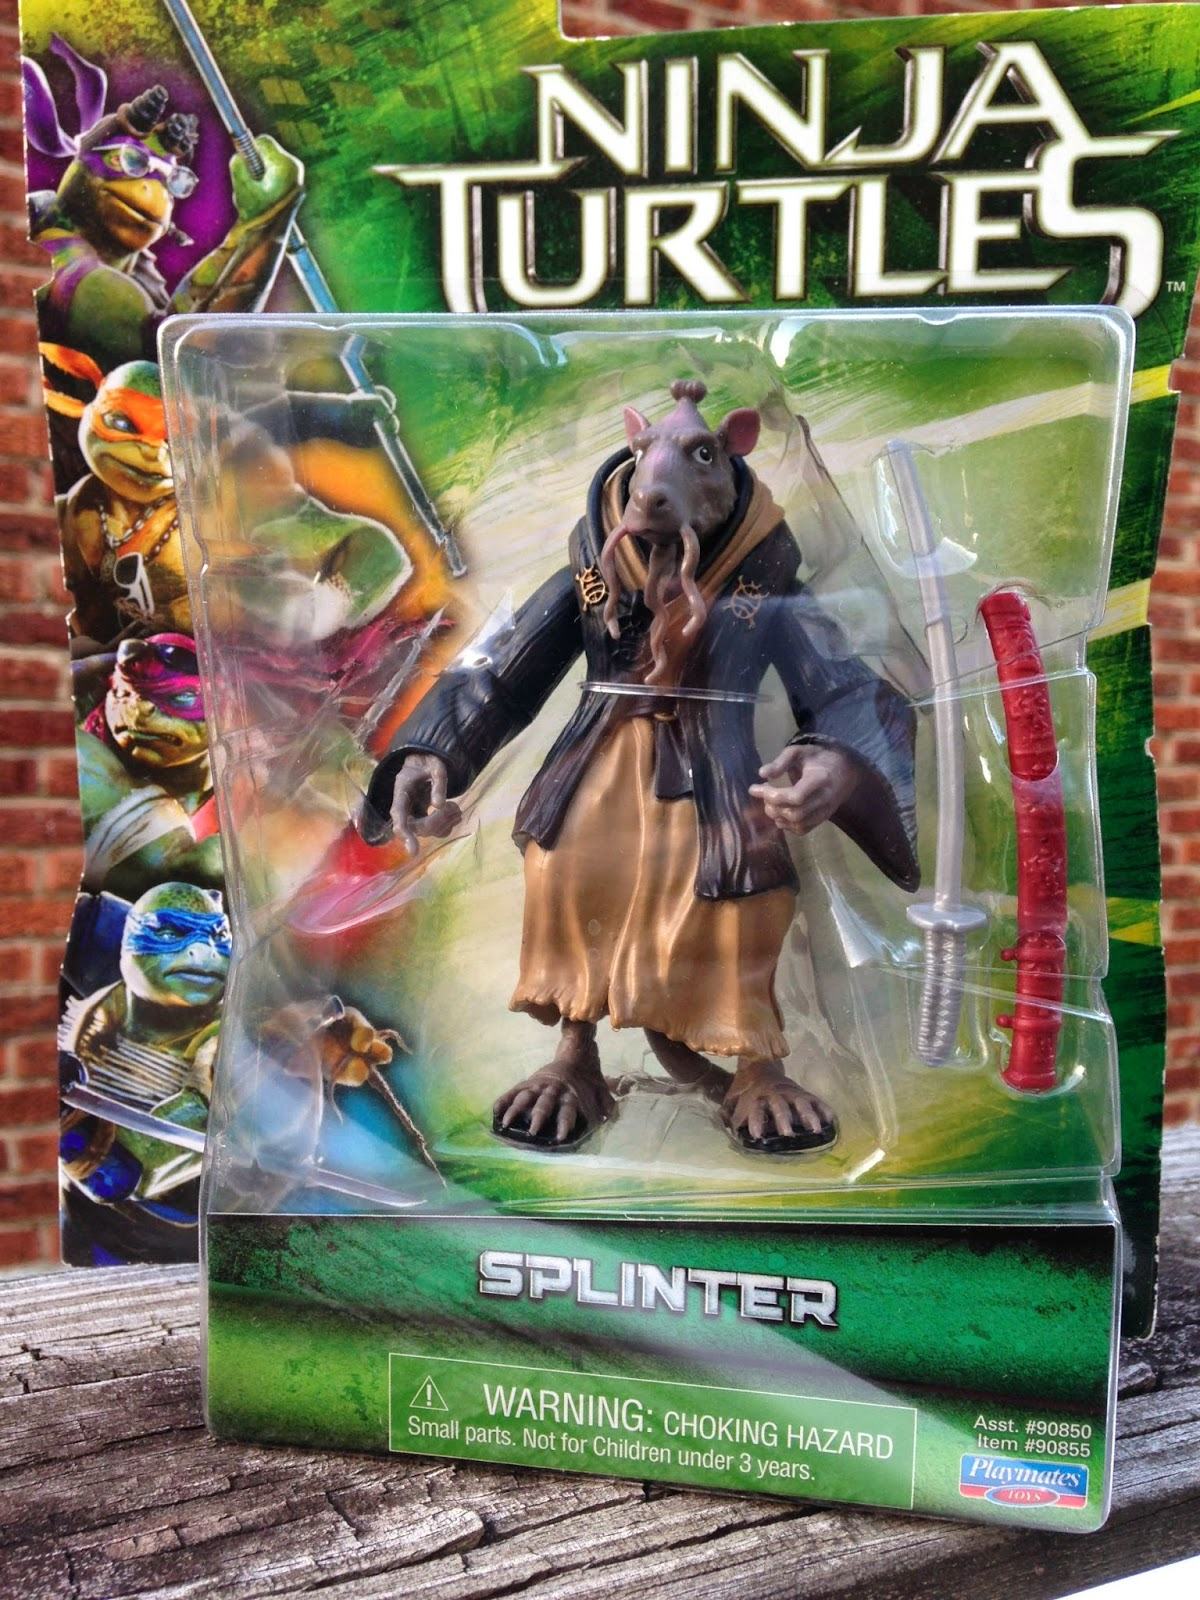 packaged 2014 ninja turtles movie figures revealed